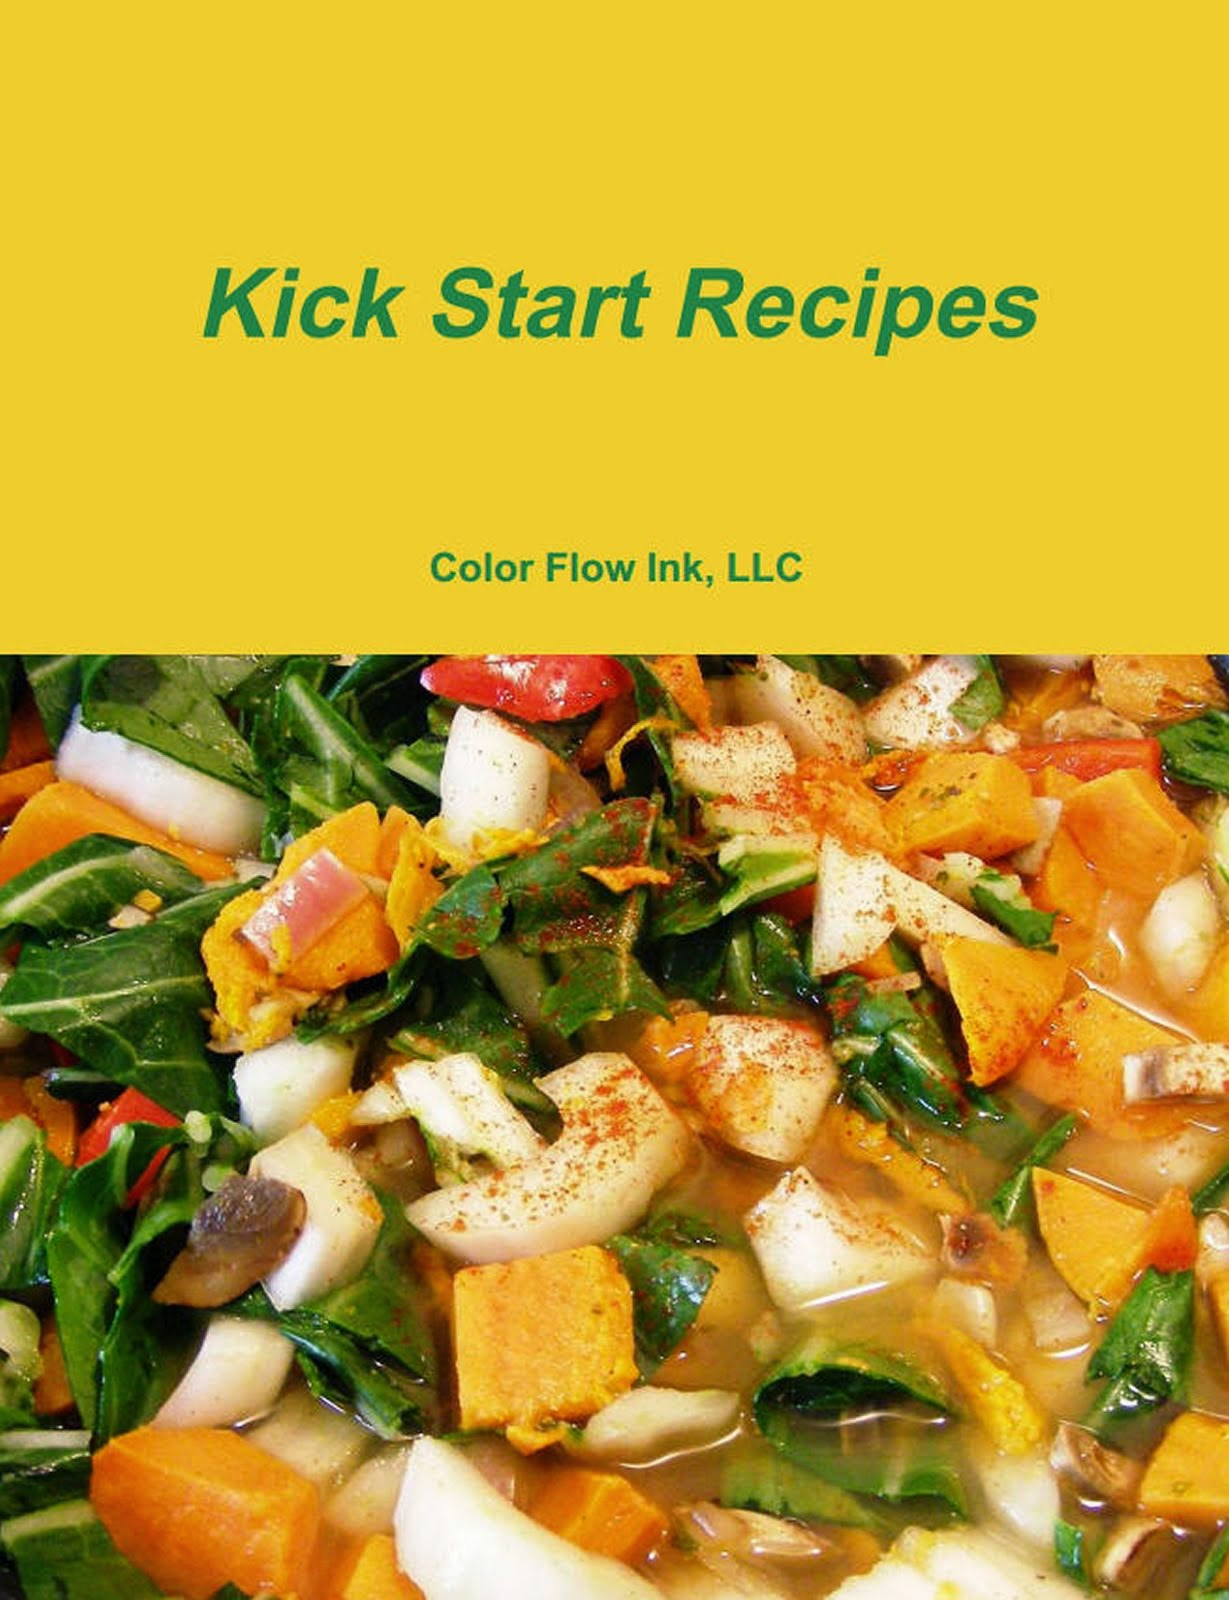 COOKBOOKS - Kick Start Recipes